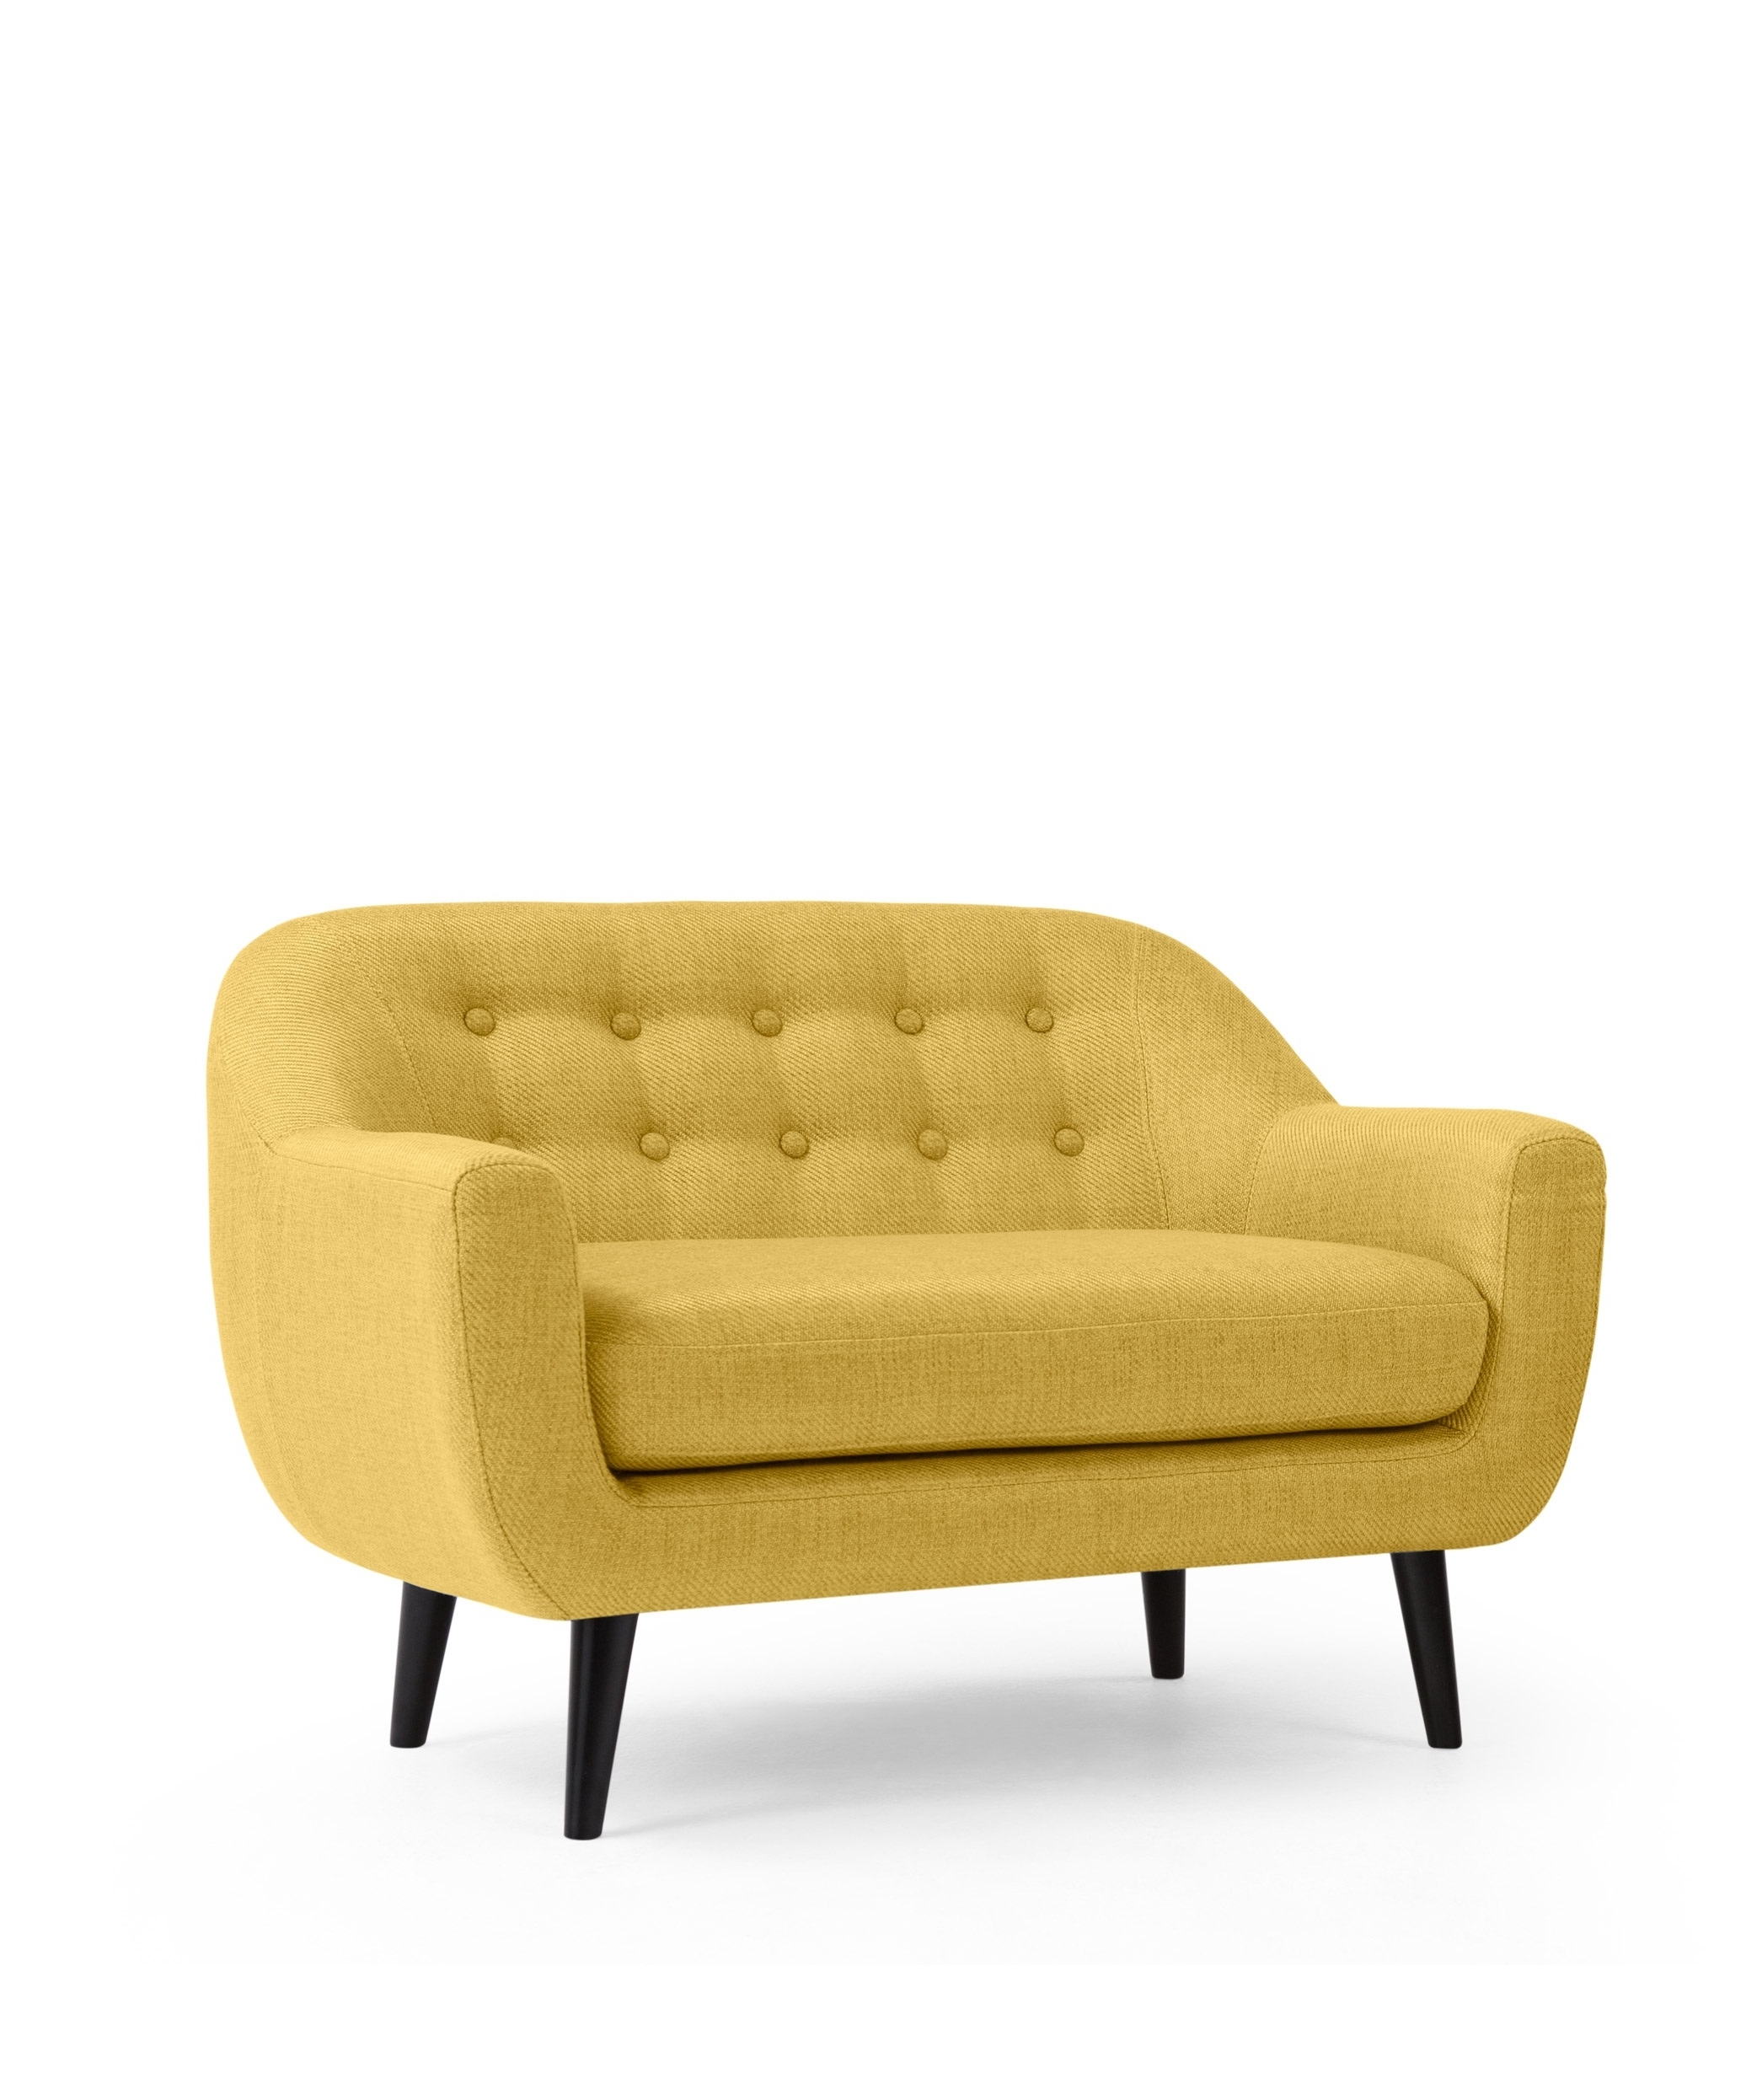 Widely Used The Mini Ritchie 2 Seater Sofa, In Ochre Yellow (View 10 of 20)